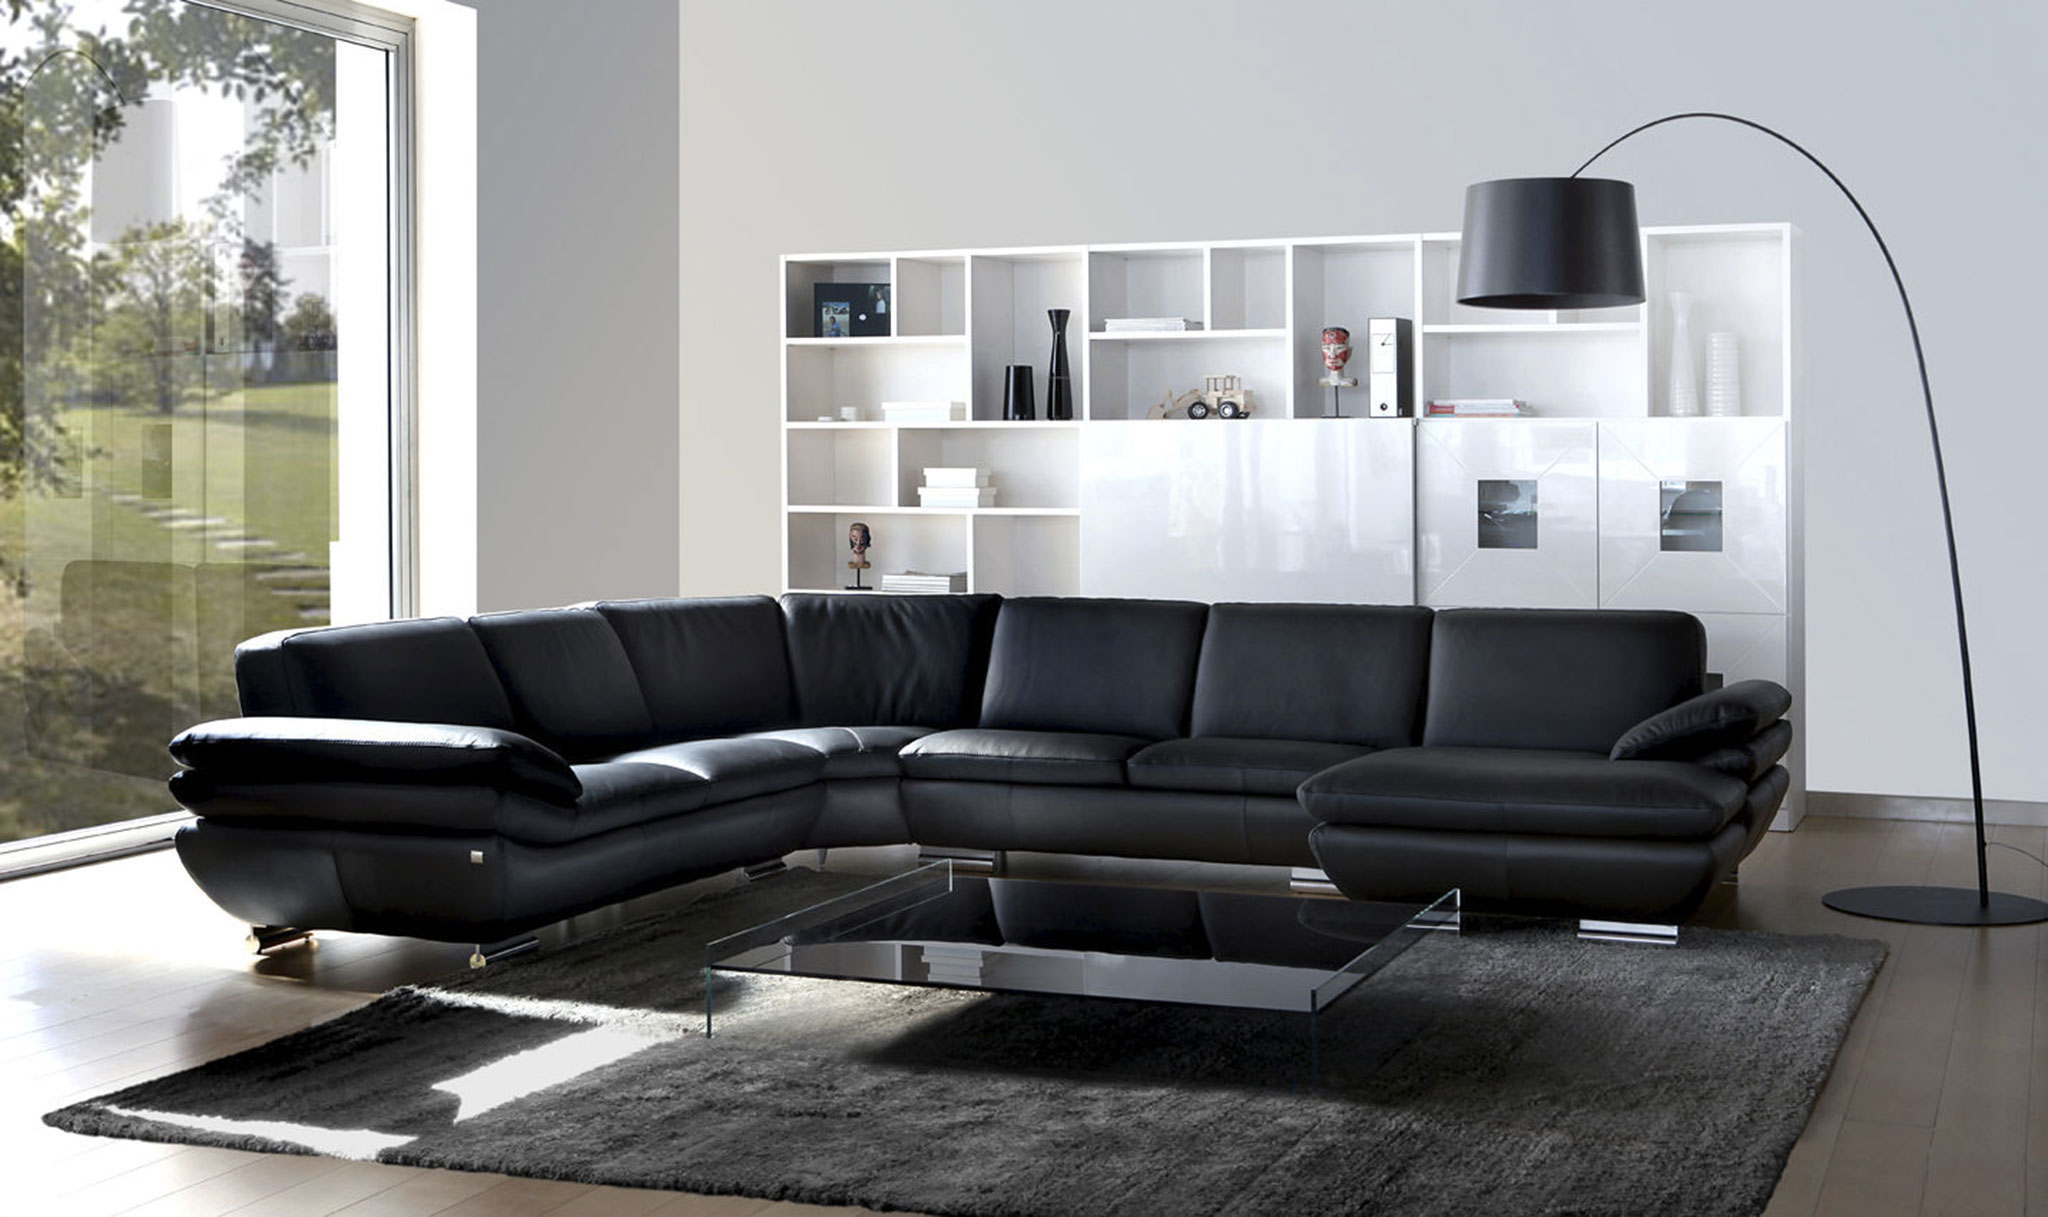 salon d angle en cuir pas cher royal sofa id e de. Black Bedroom Furniture Sets. Home Design Ideas